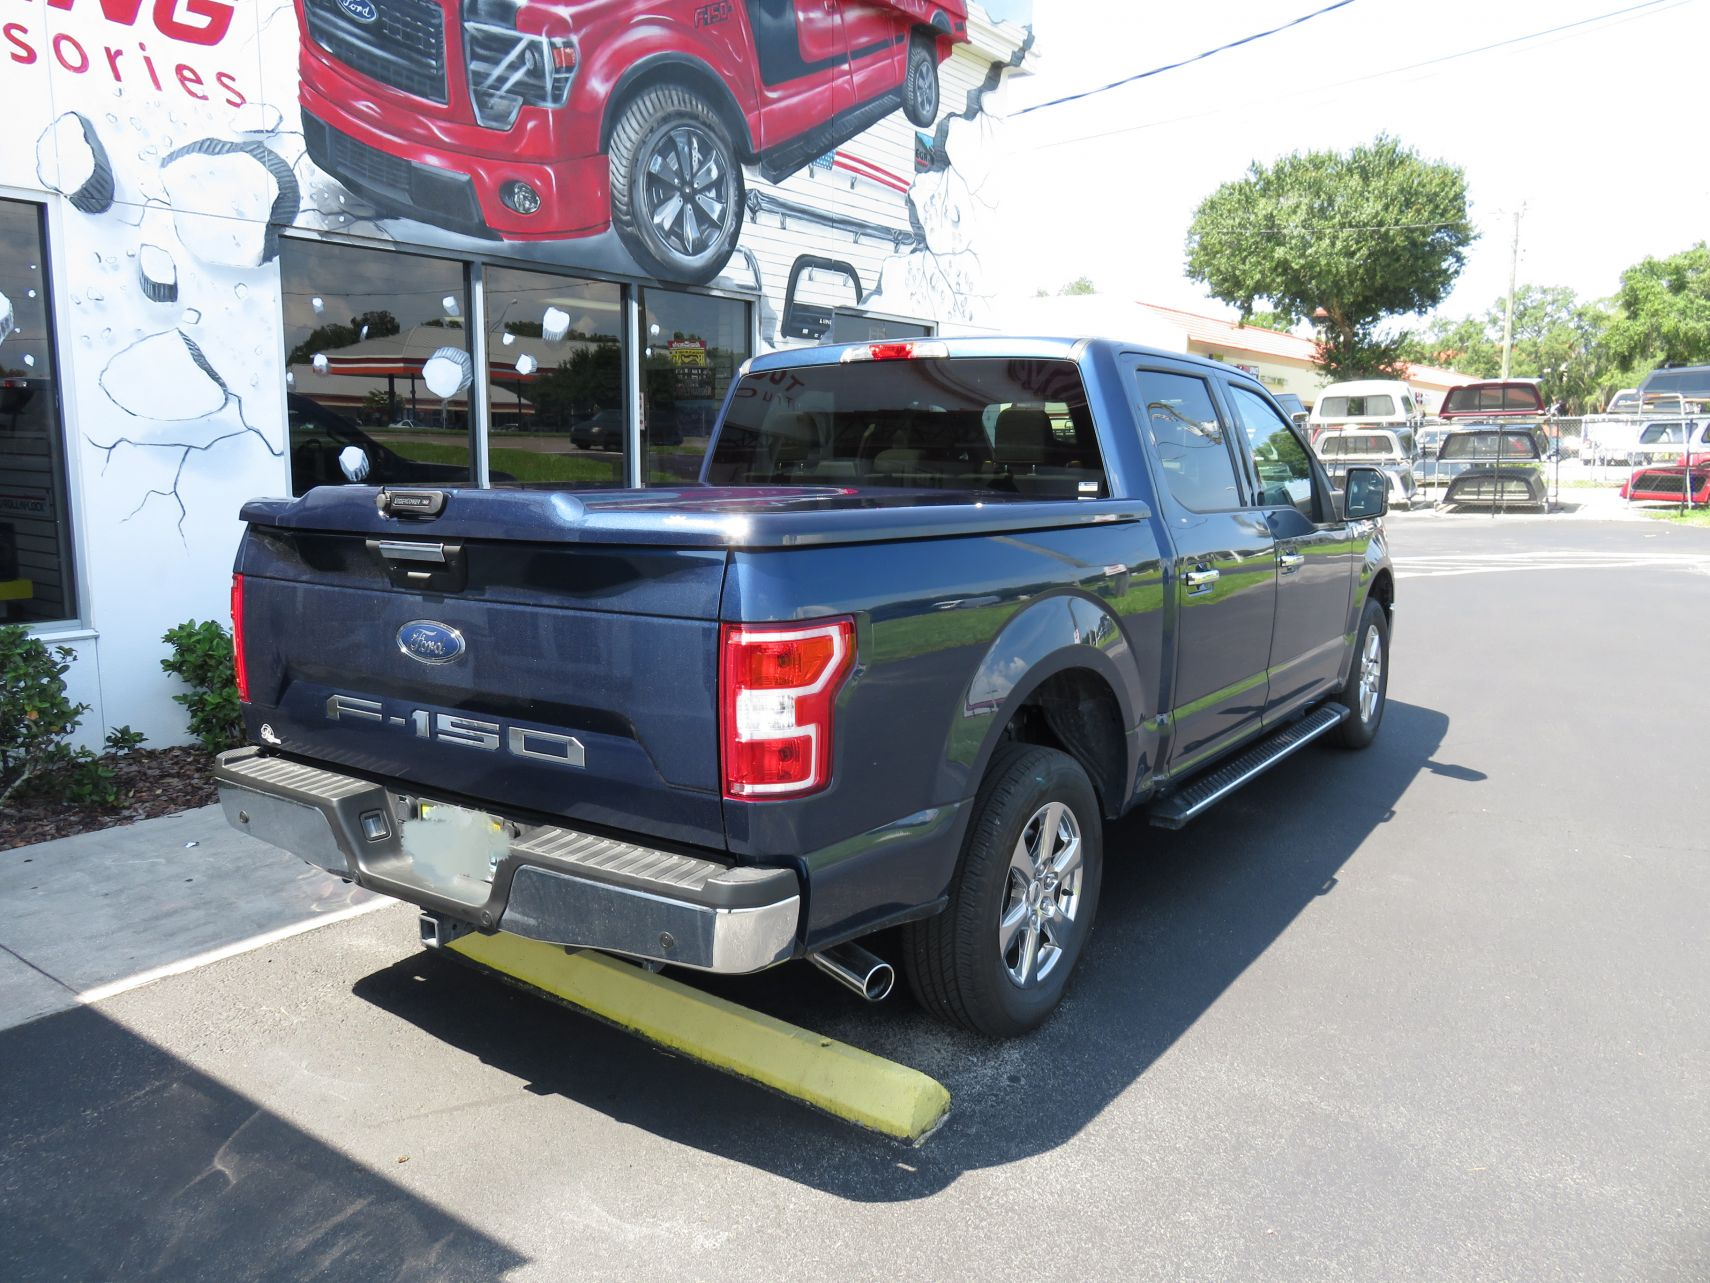 2018 Blue Ford F150 Undercover Elite, Nerf Bars, Tint, Custom Hitch by TopperKING in Brandon, FL 813-689-2449 or Clearwater, FL 727-530-9066. Call today!